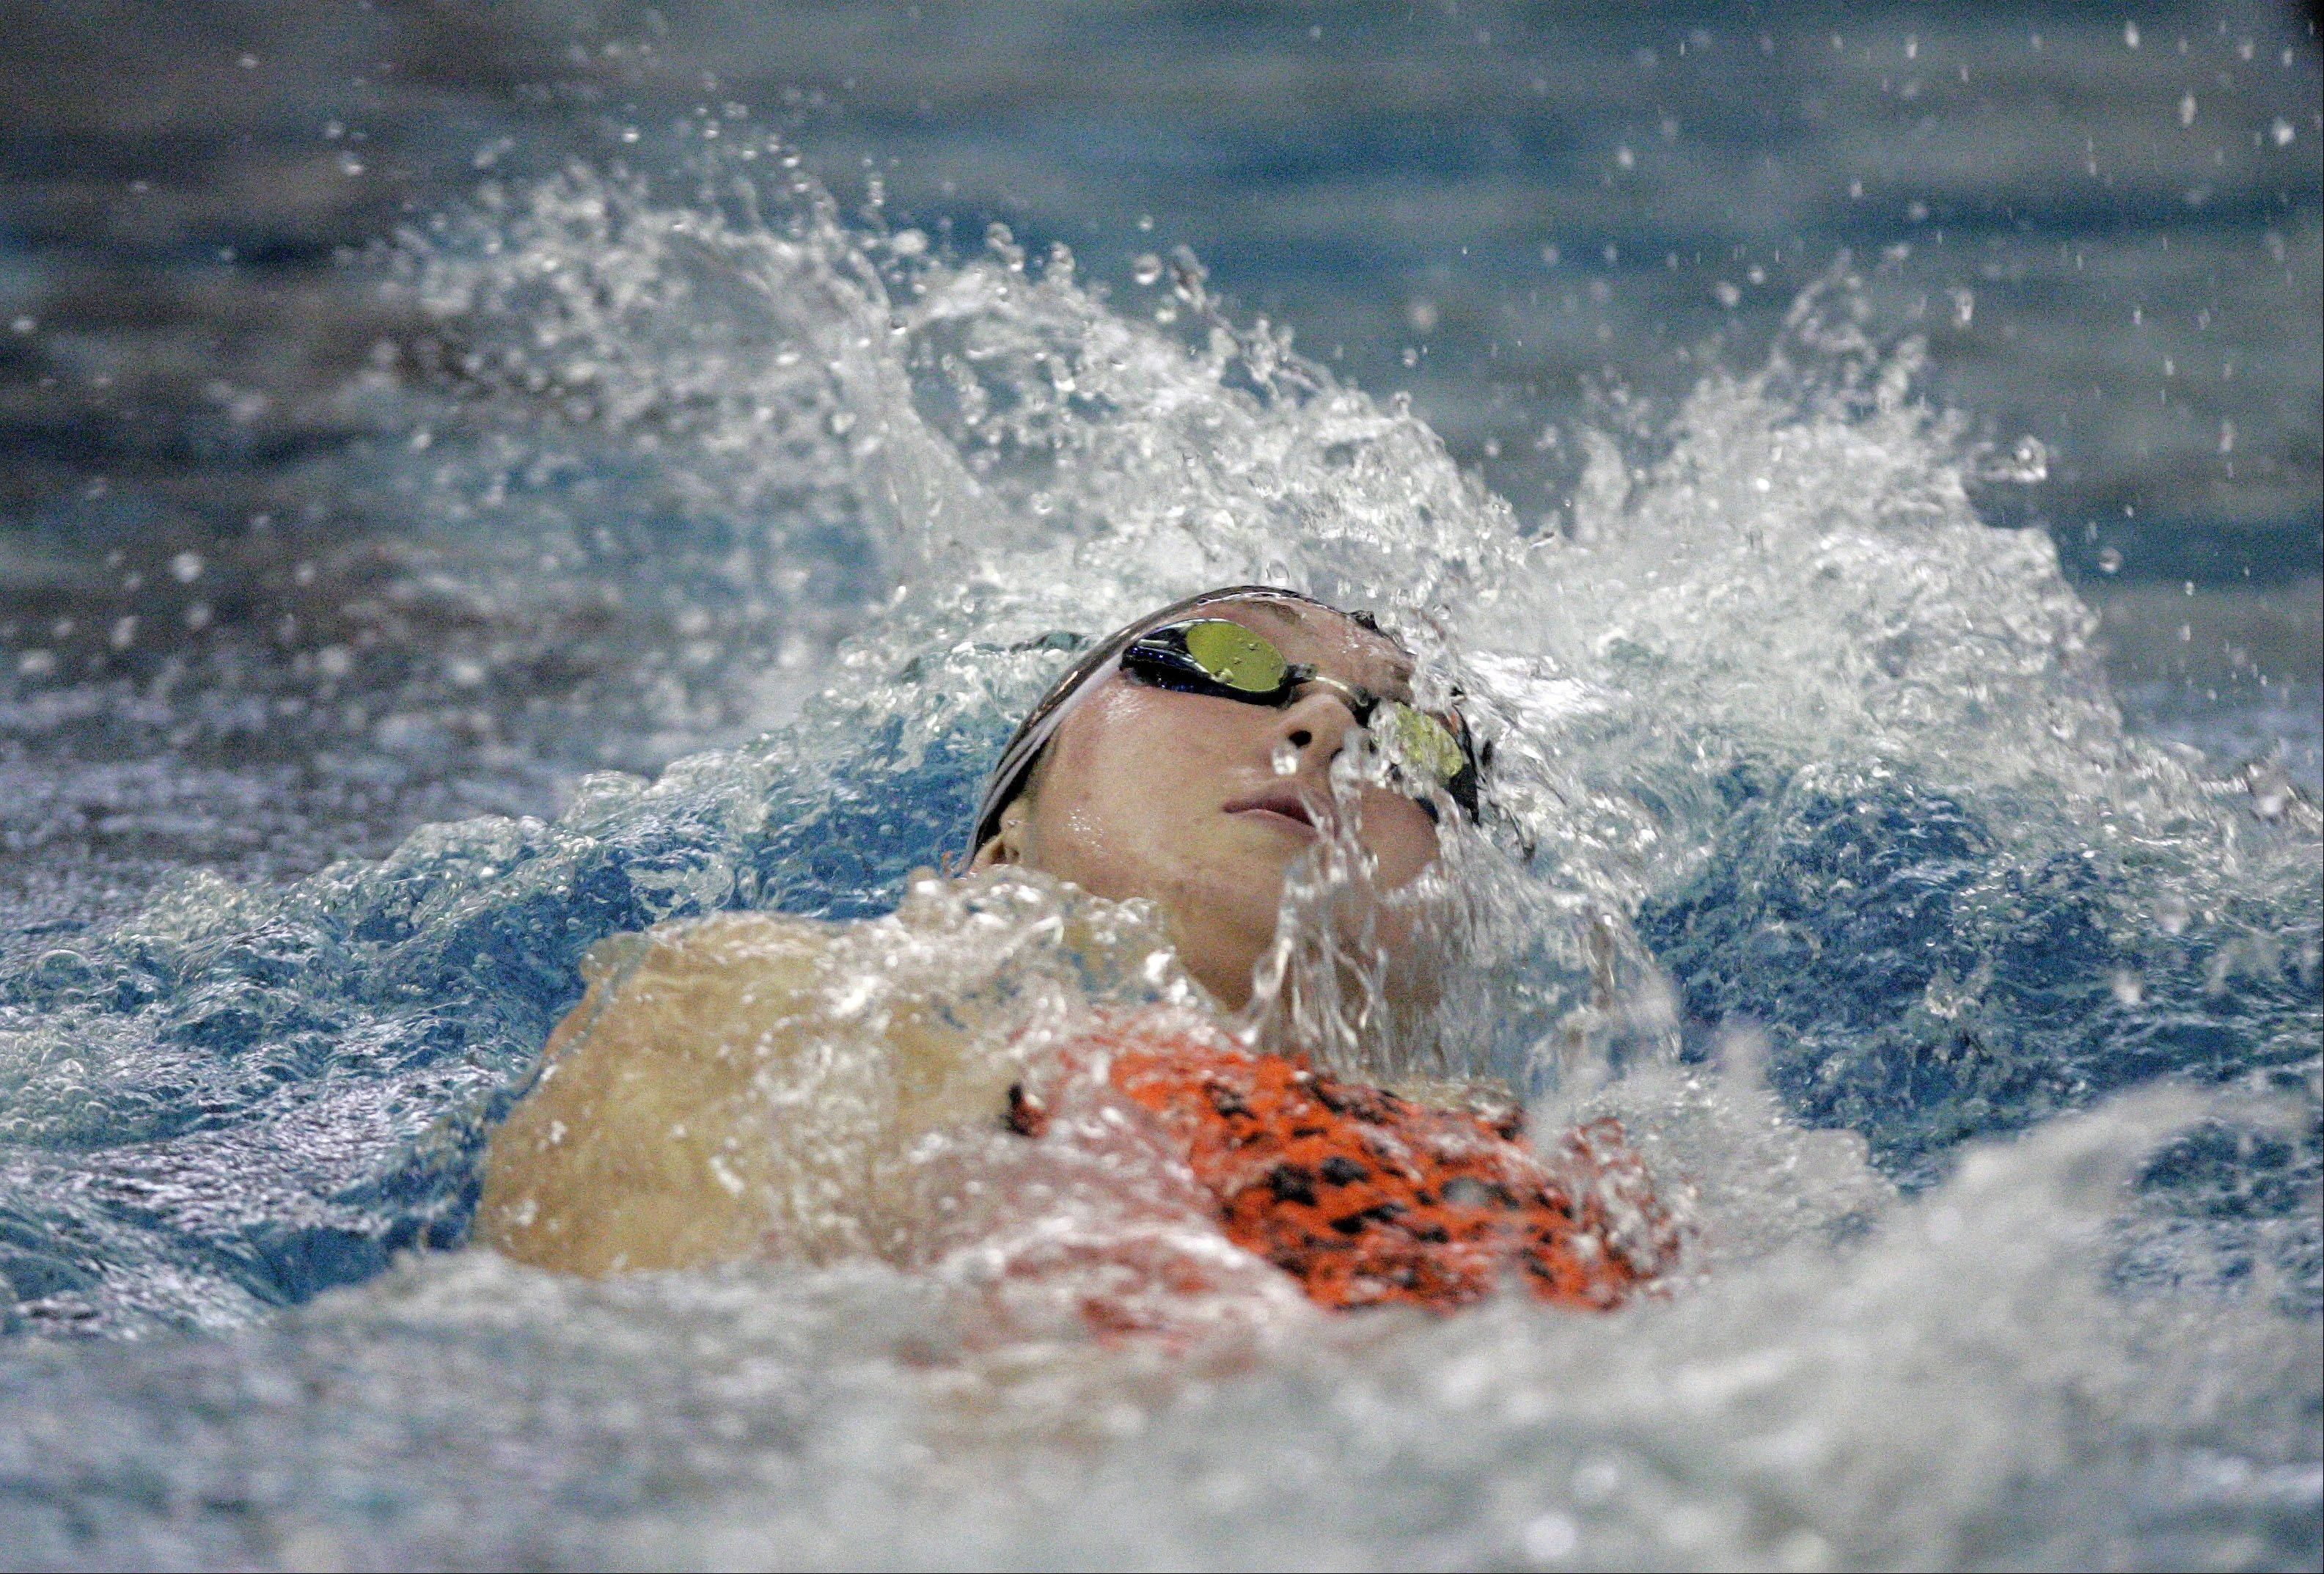 BRIAN HILL/bhill@dailyherald.comNicole Chapko of St. Charles East swims the 200 yard IM during the St. Charles North girls swimming sectional Saturday November 10, 2012.